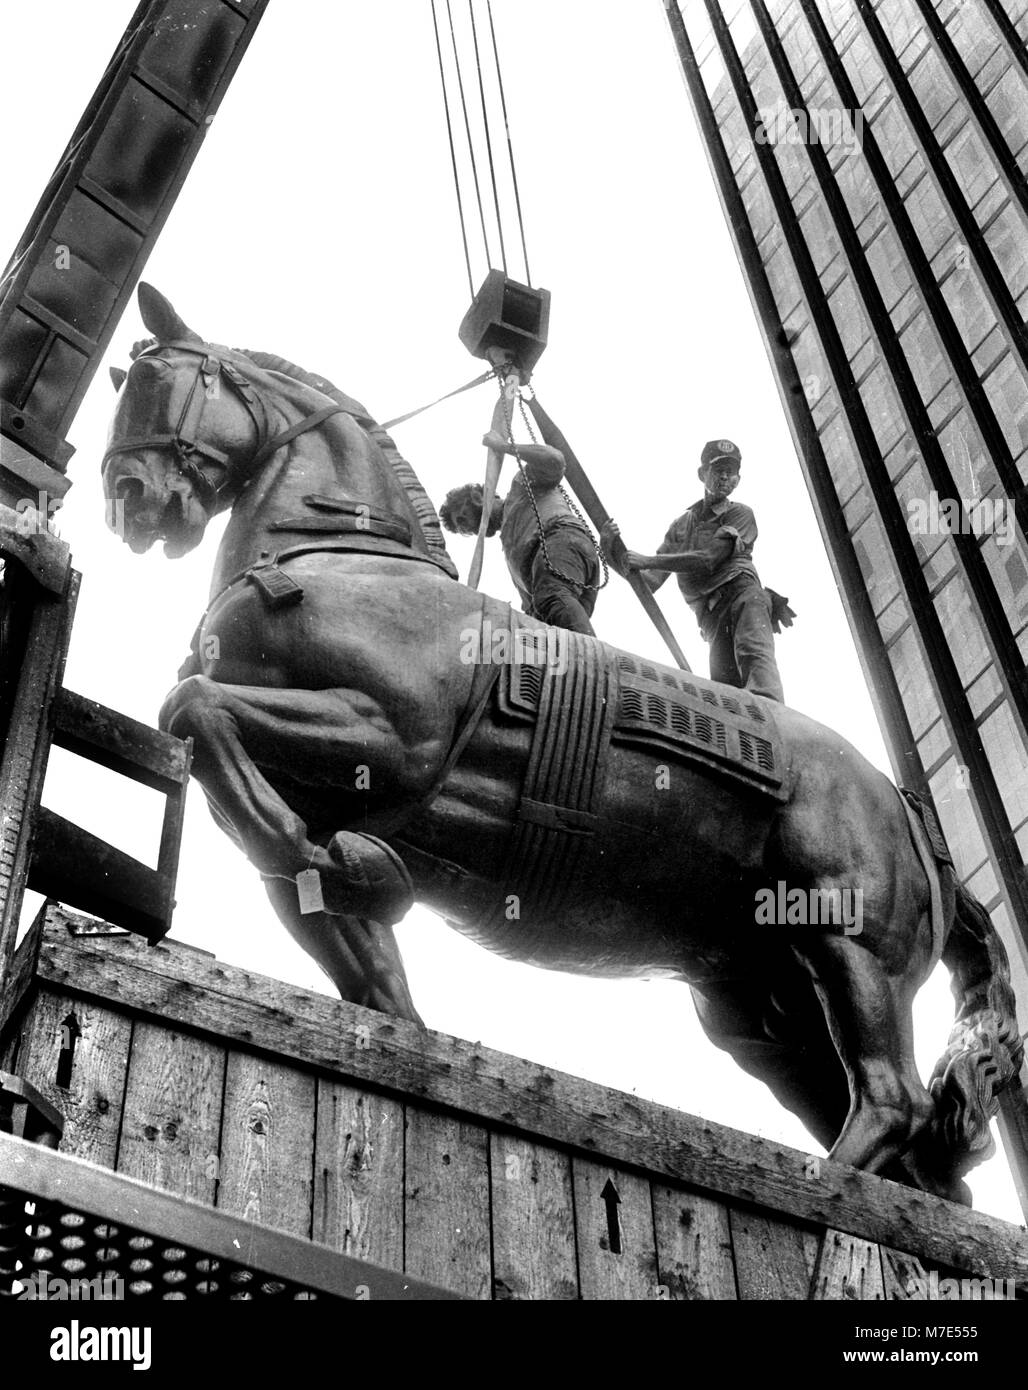 Trammell Crow's bronze horse delivered to dallas Tx USA, the Monument to Alvear Horse by Antoine Bourdelle (31 - Stock Image